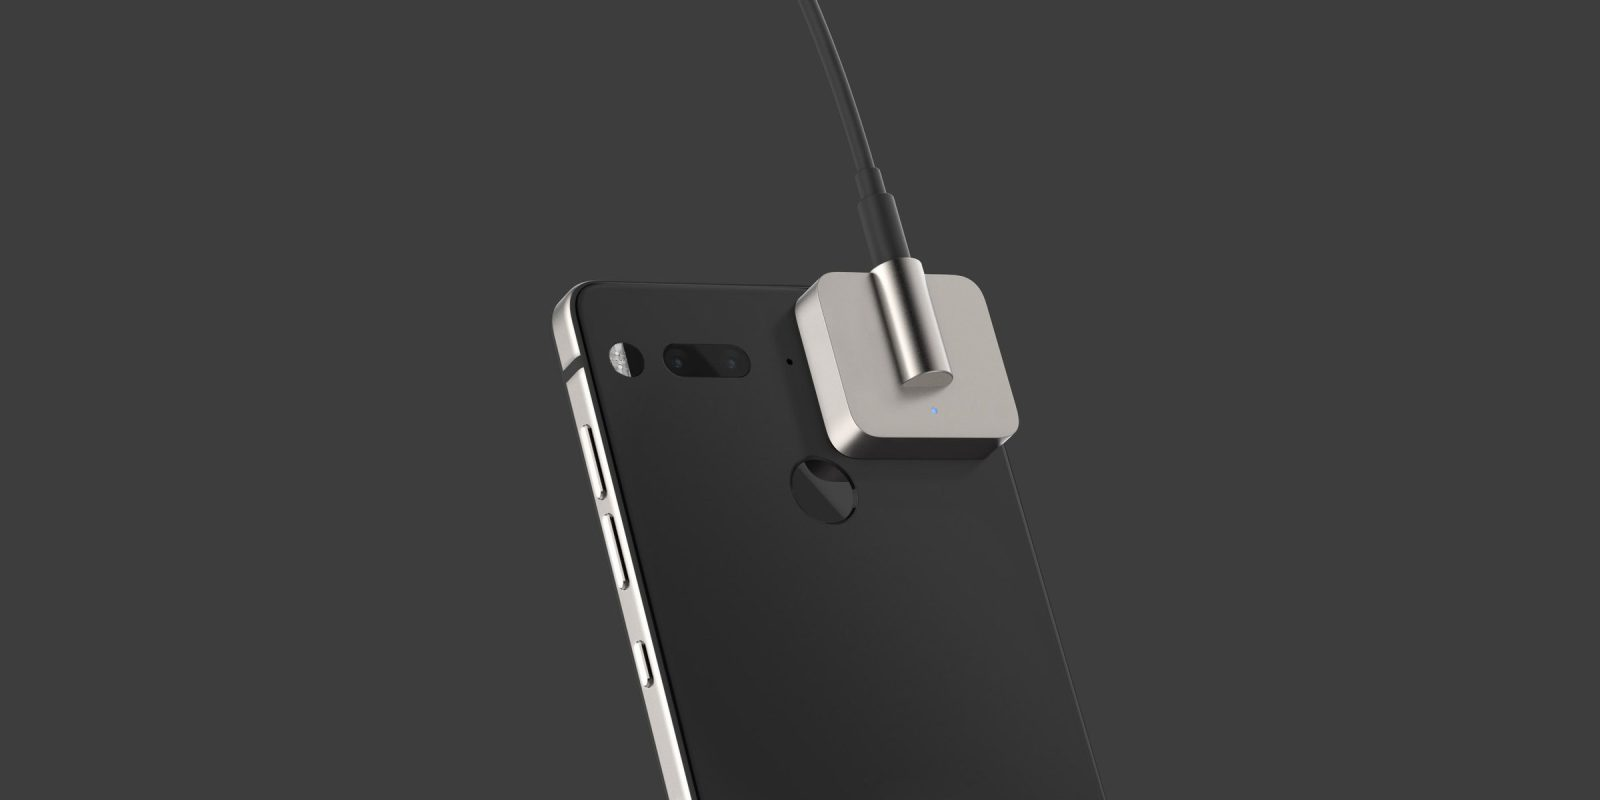 essential audio adapter hd now available for 149 9to5google